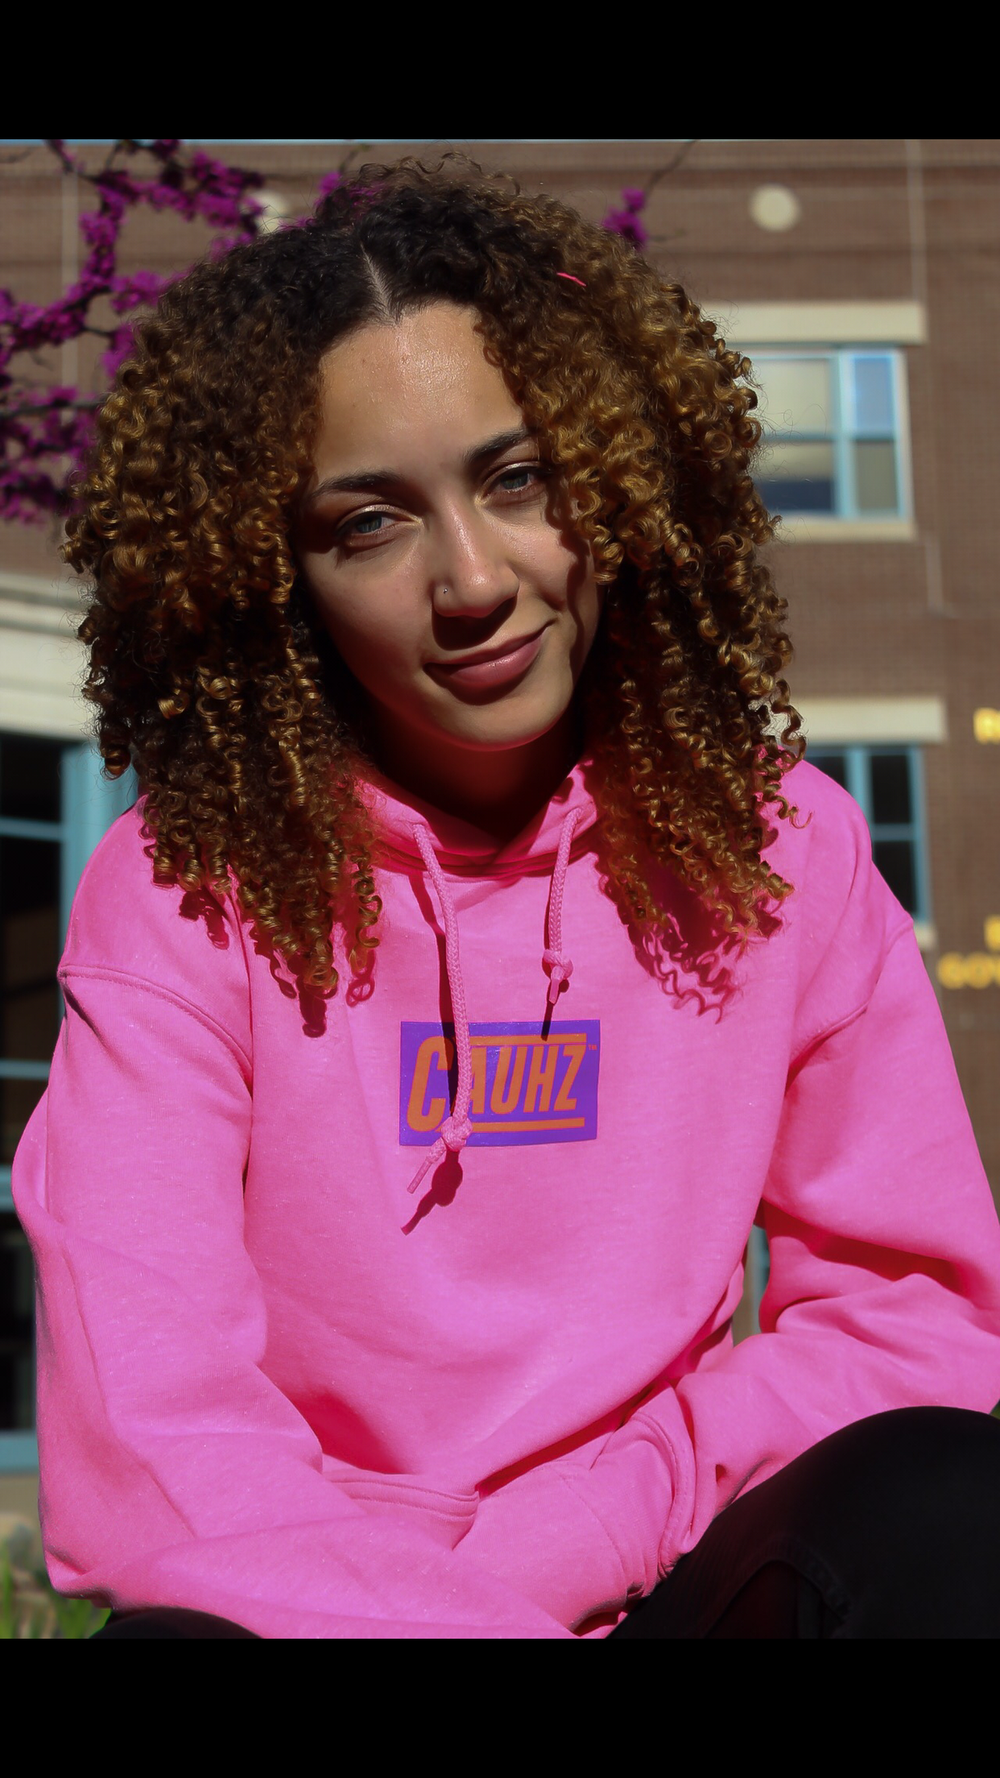 Cauhz™️ Easter Pink Hoody